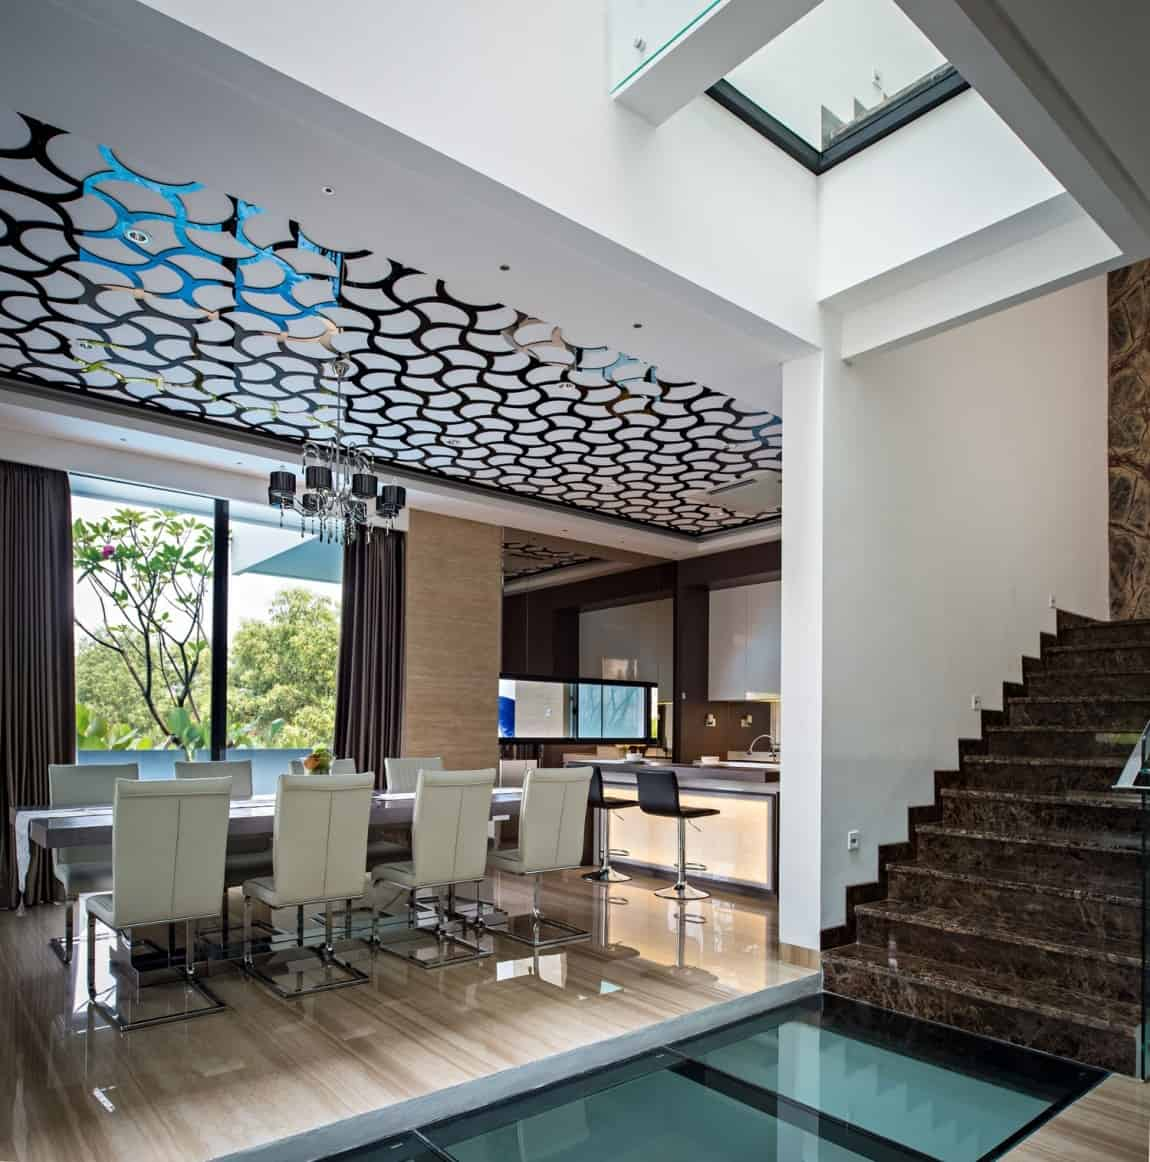 House with Creative Ceilings and Glass Floors